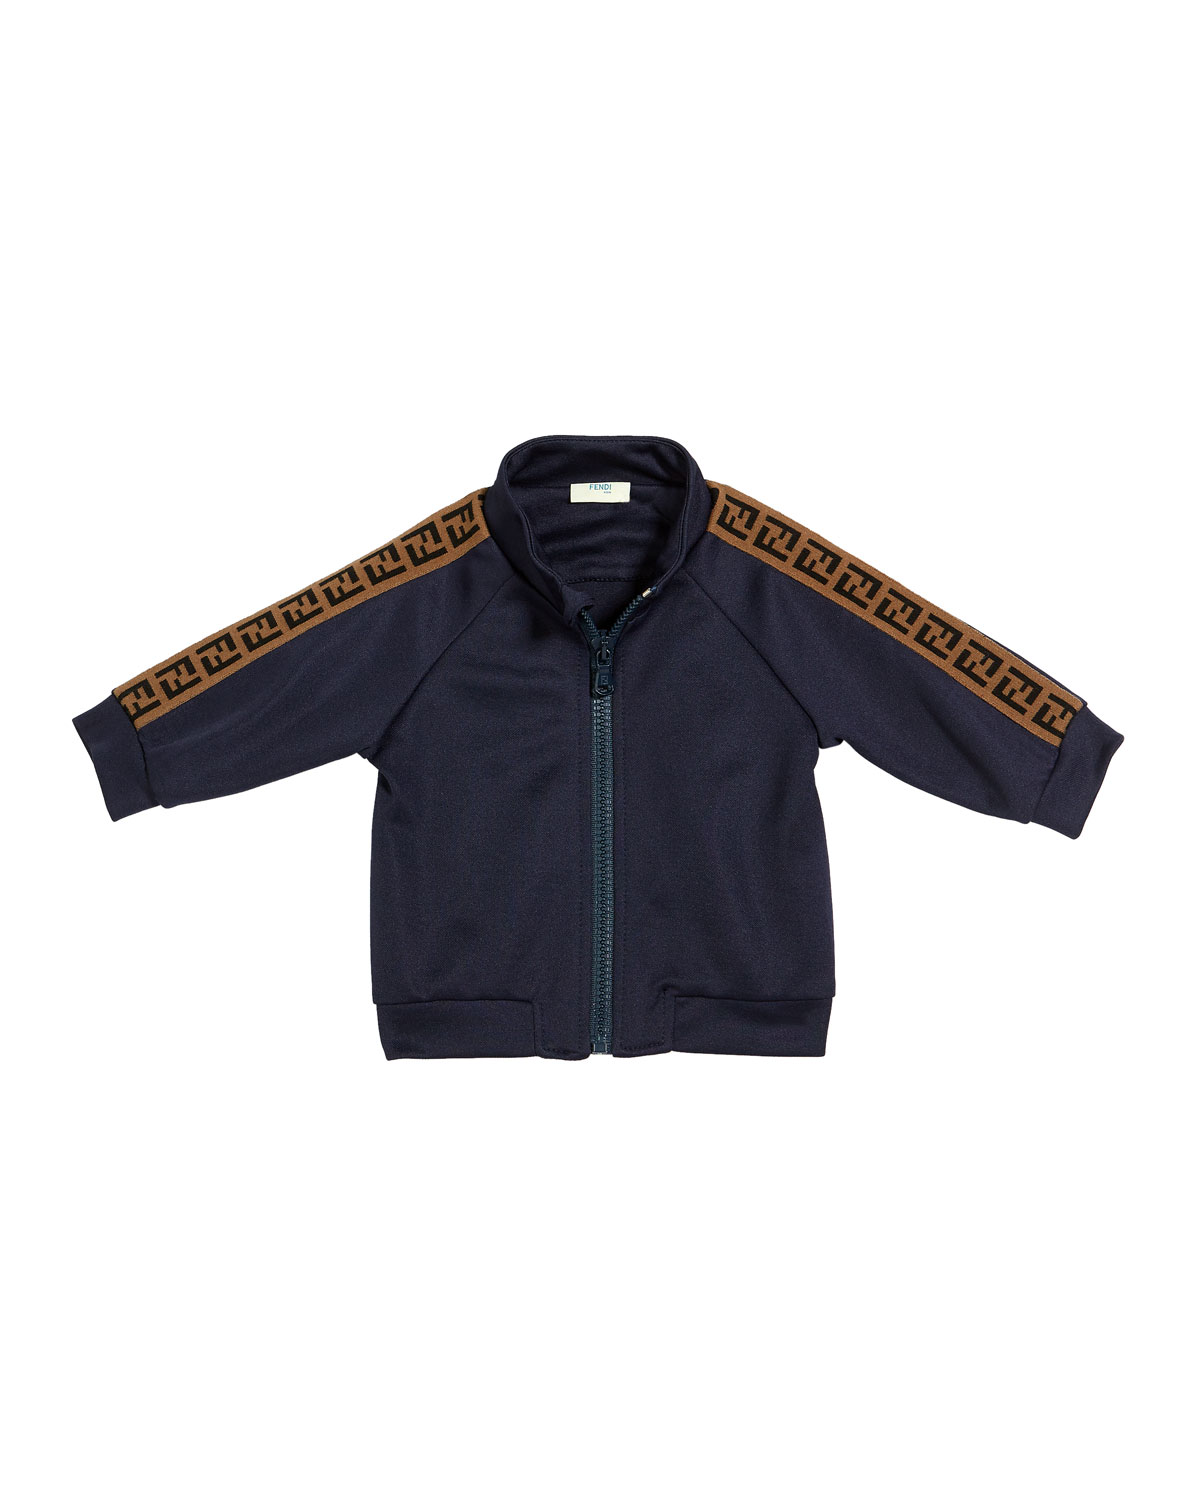 Fendi BOY'S TRACK JACKET W/ LOGO TAPING